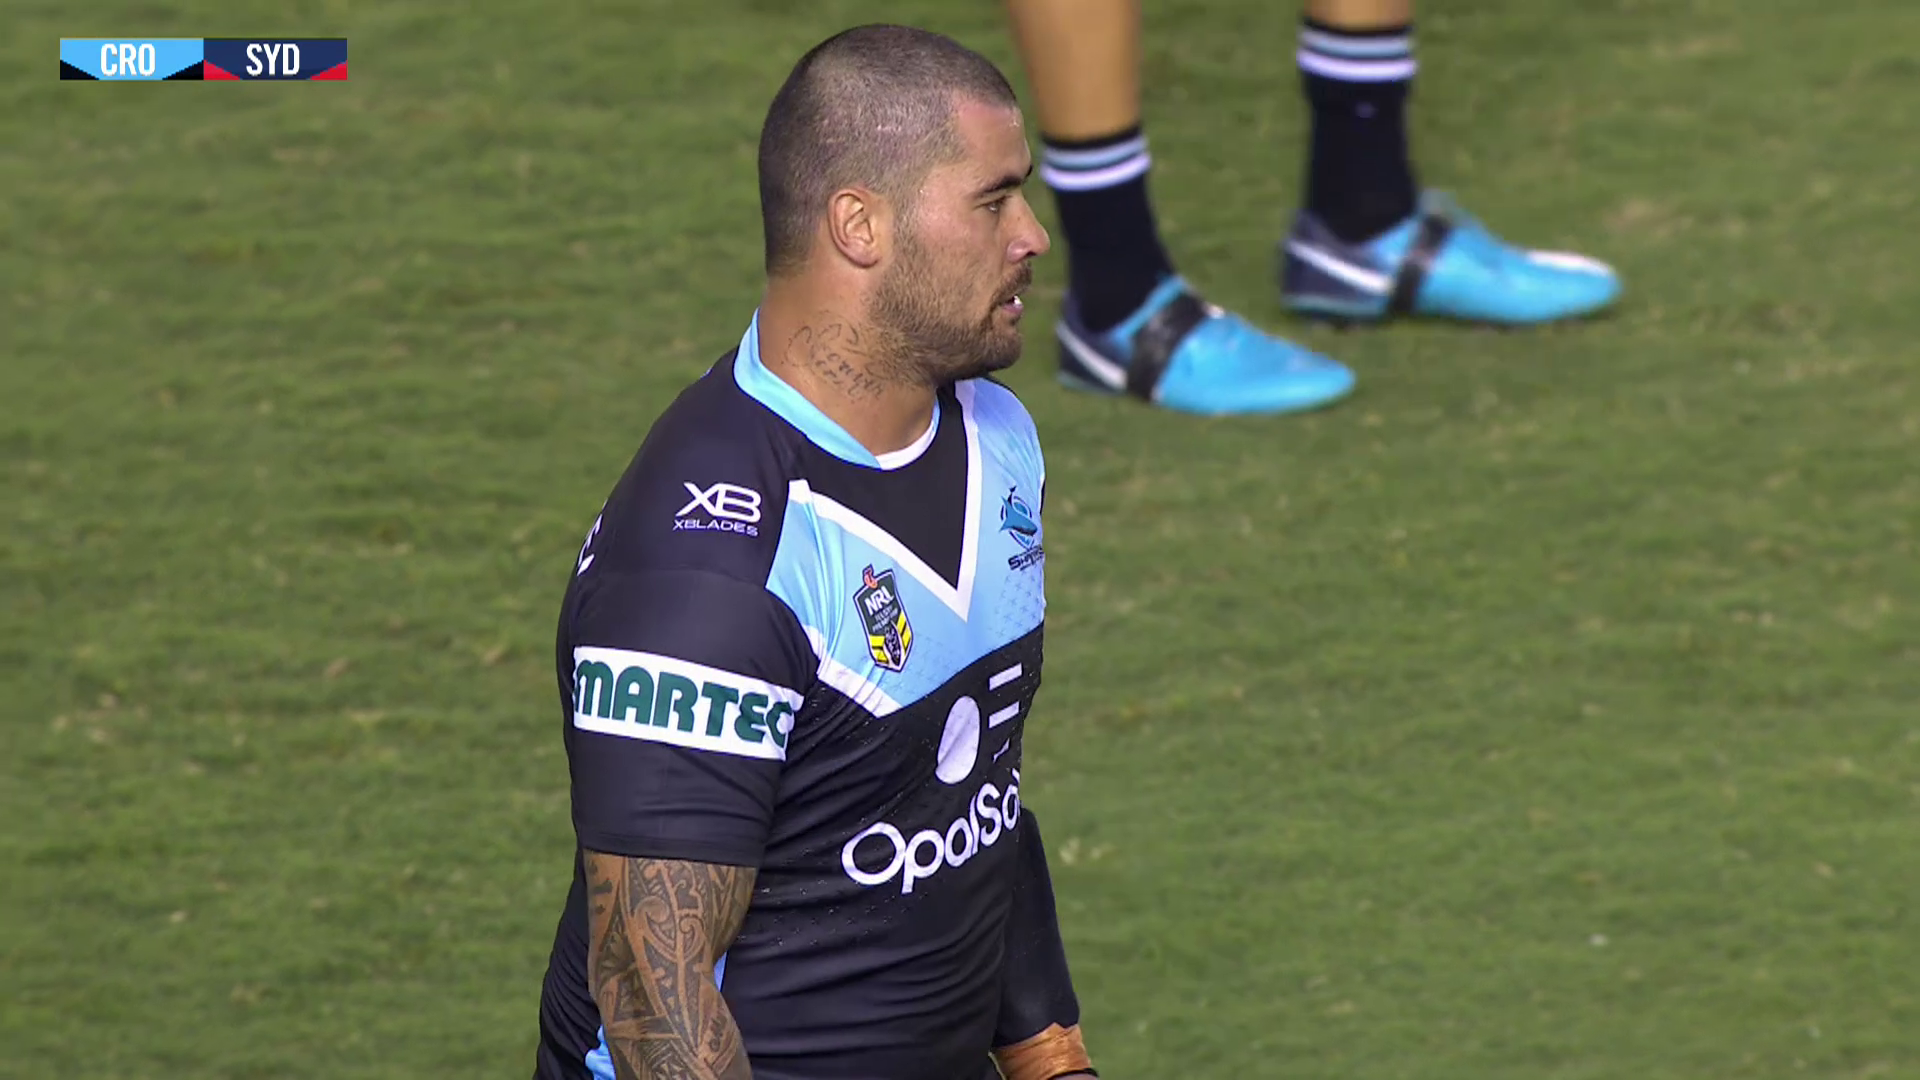 Full Match Replay: Sharks v Roosters - Round 5, 2018